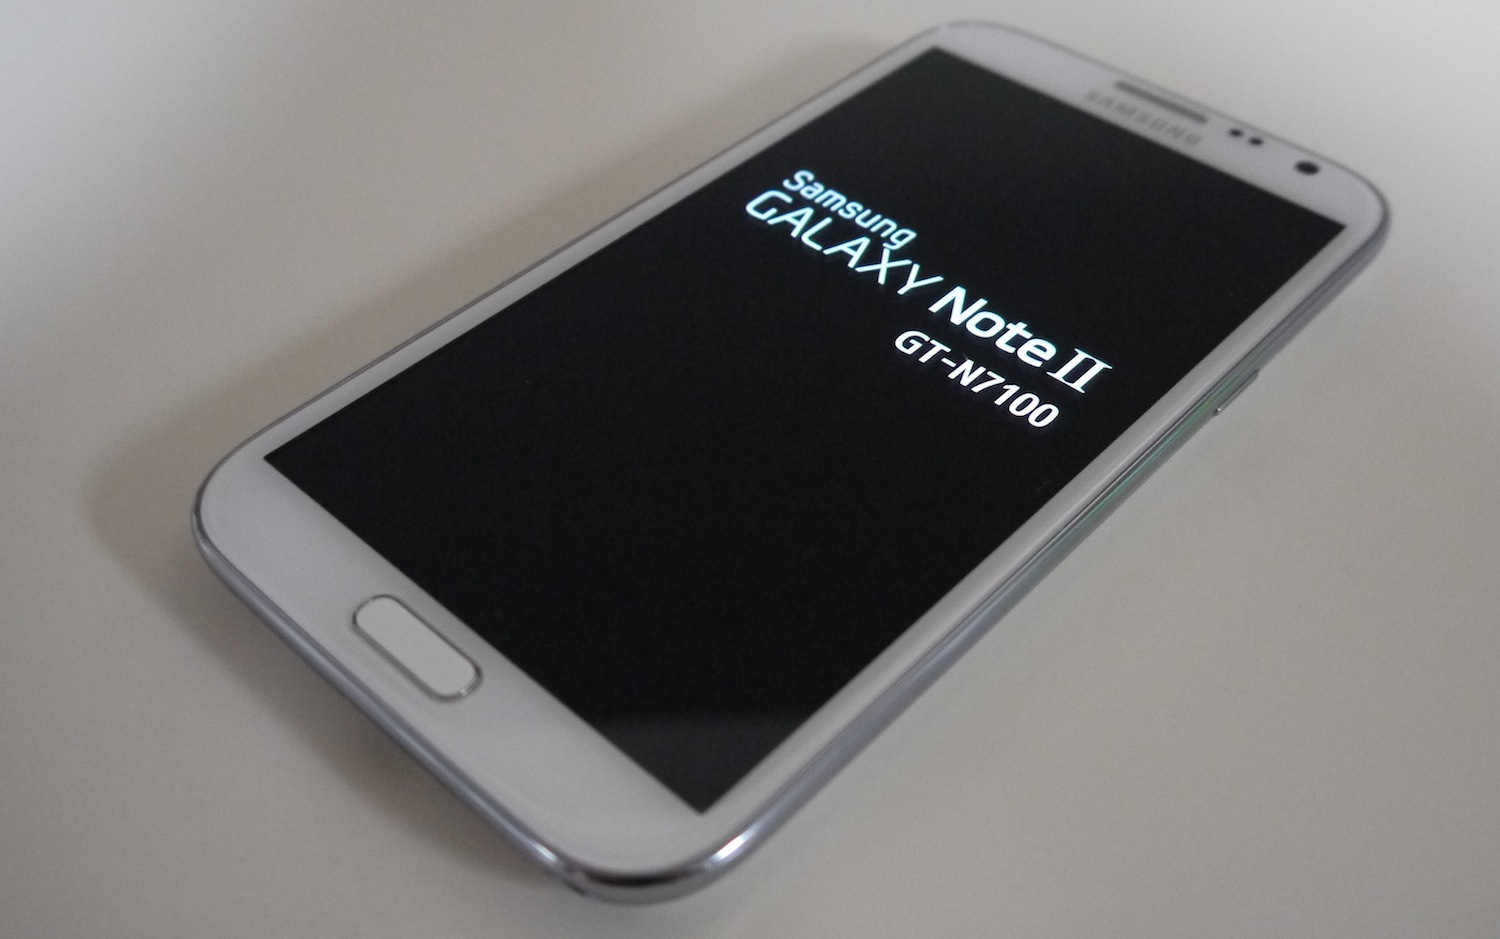 Test du smartphone Android Samsung Galaxy Note 2